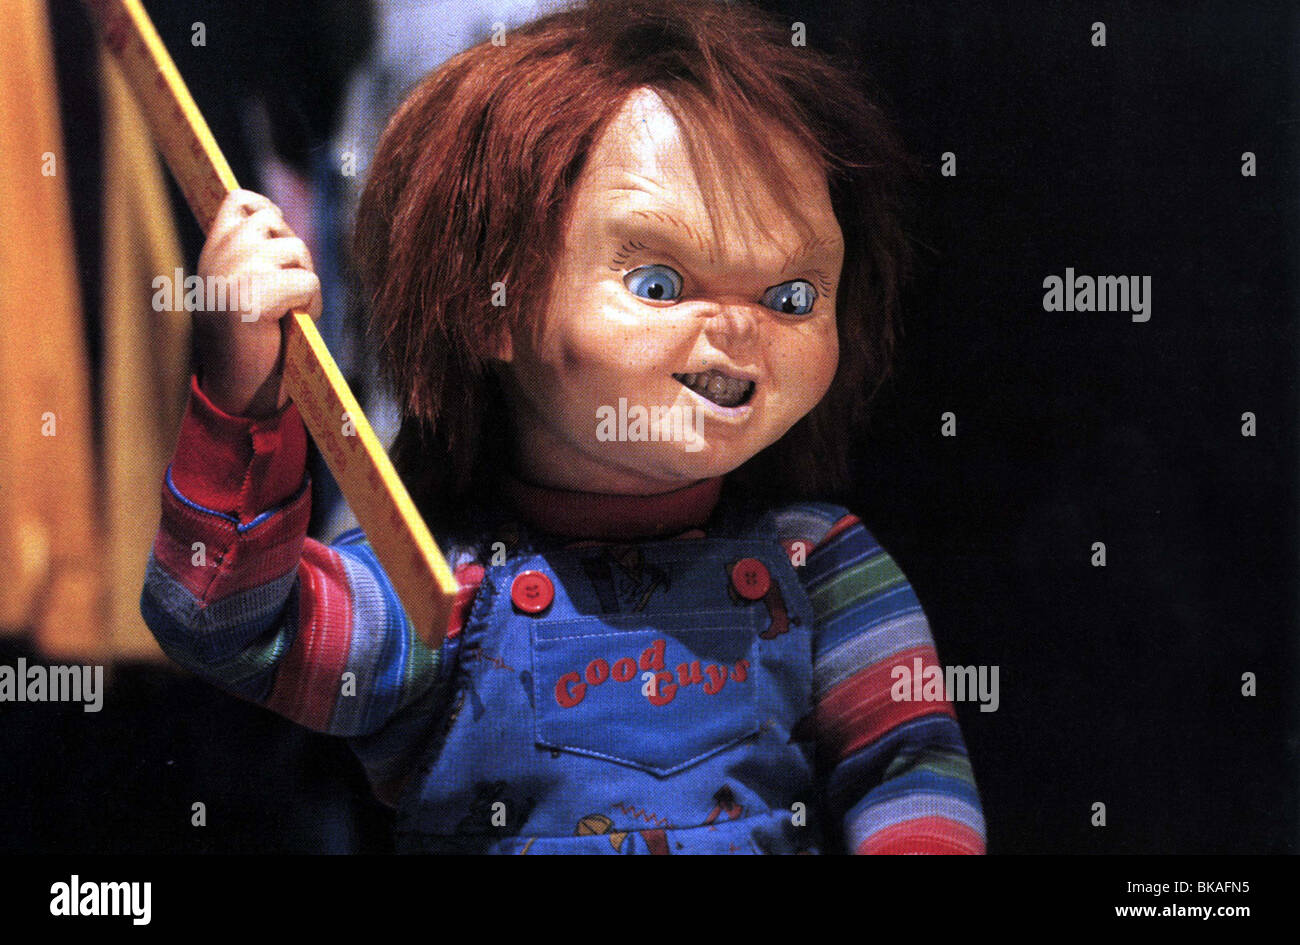 Download Film Childs Play 2 1990